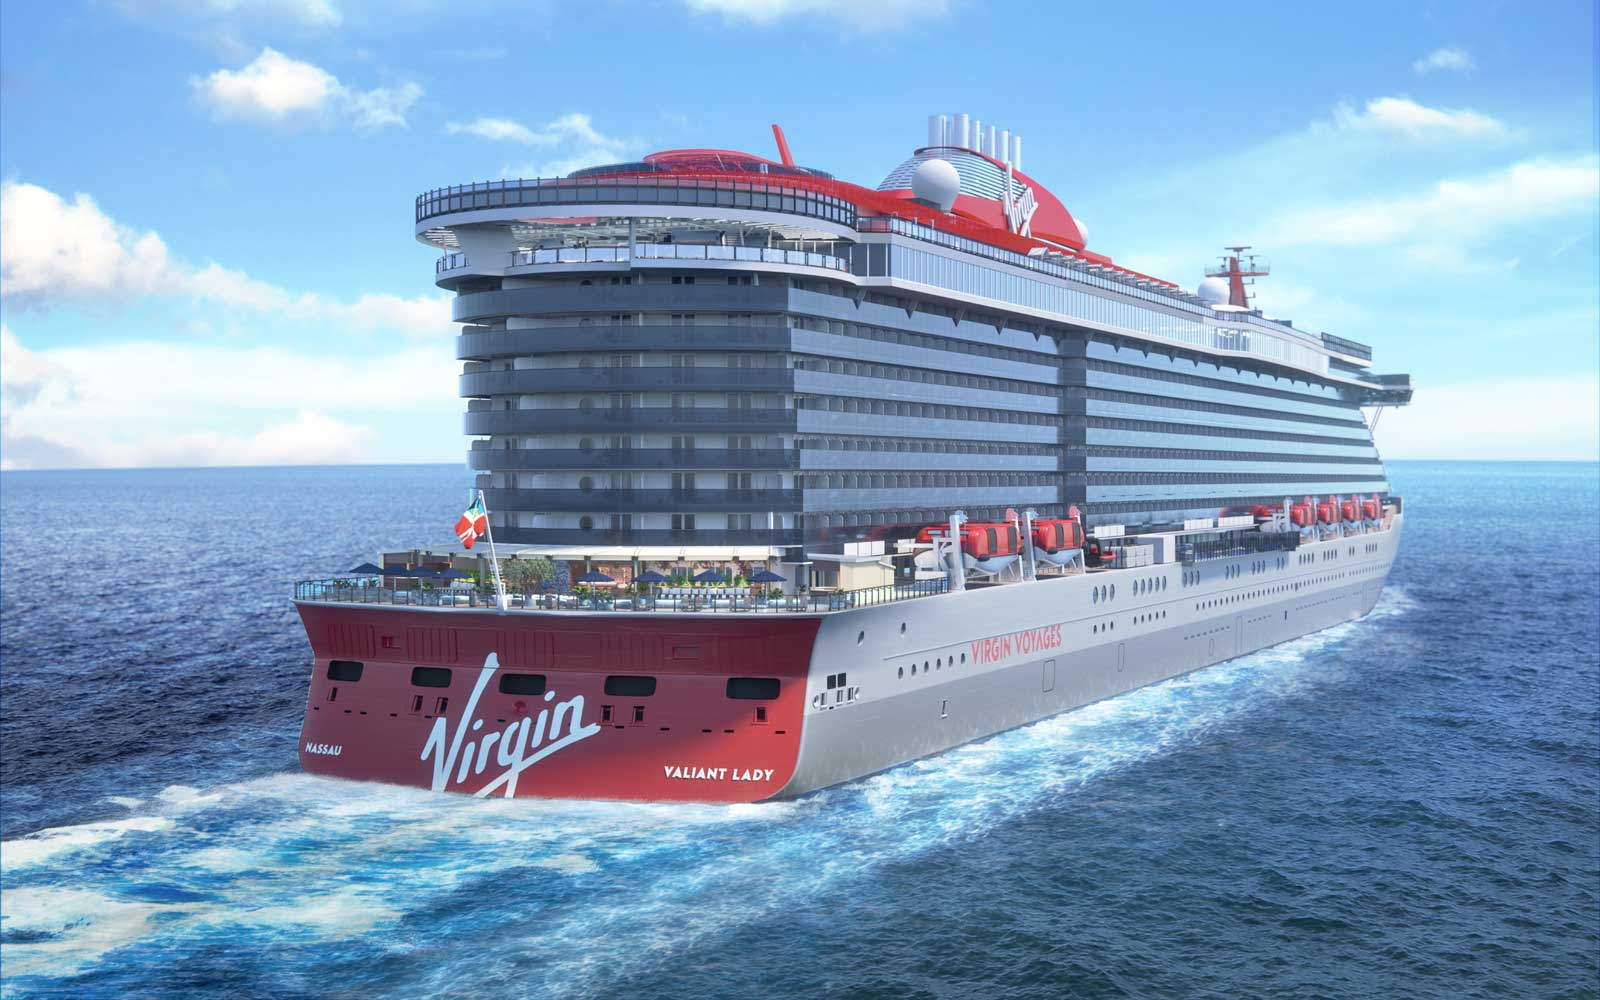 Virgin Voyages - Valiant Lady Ship